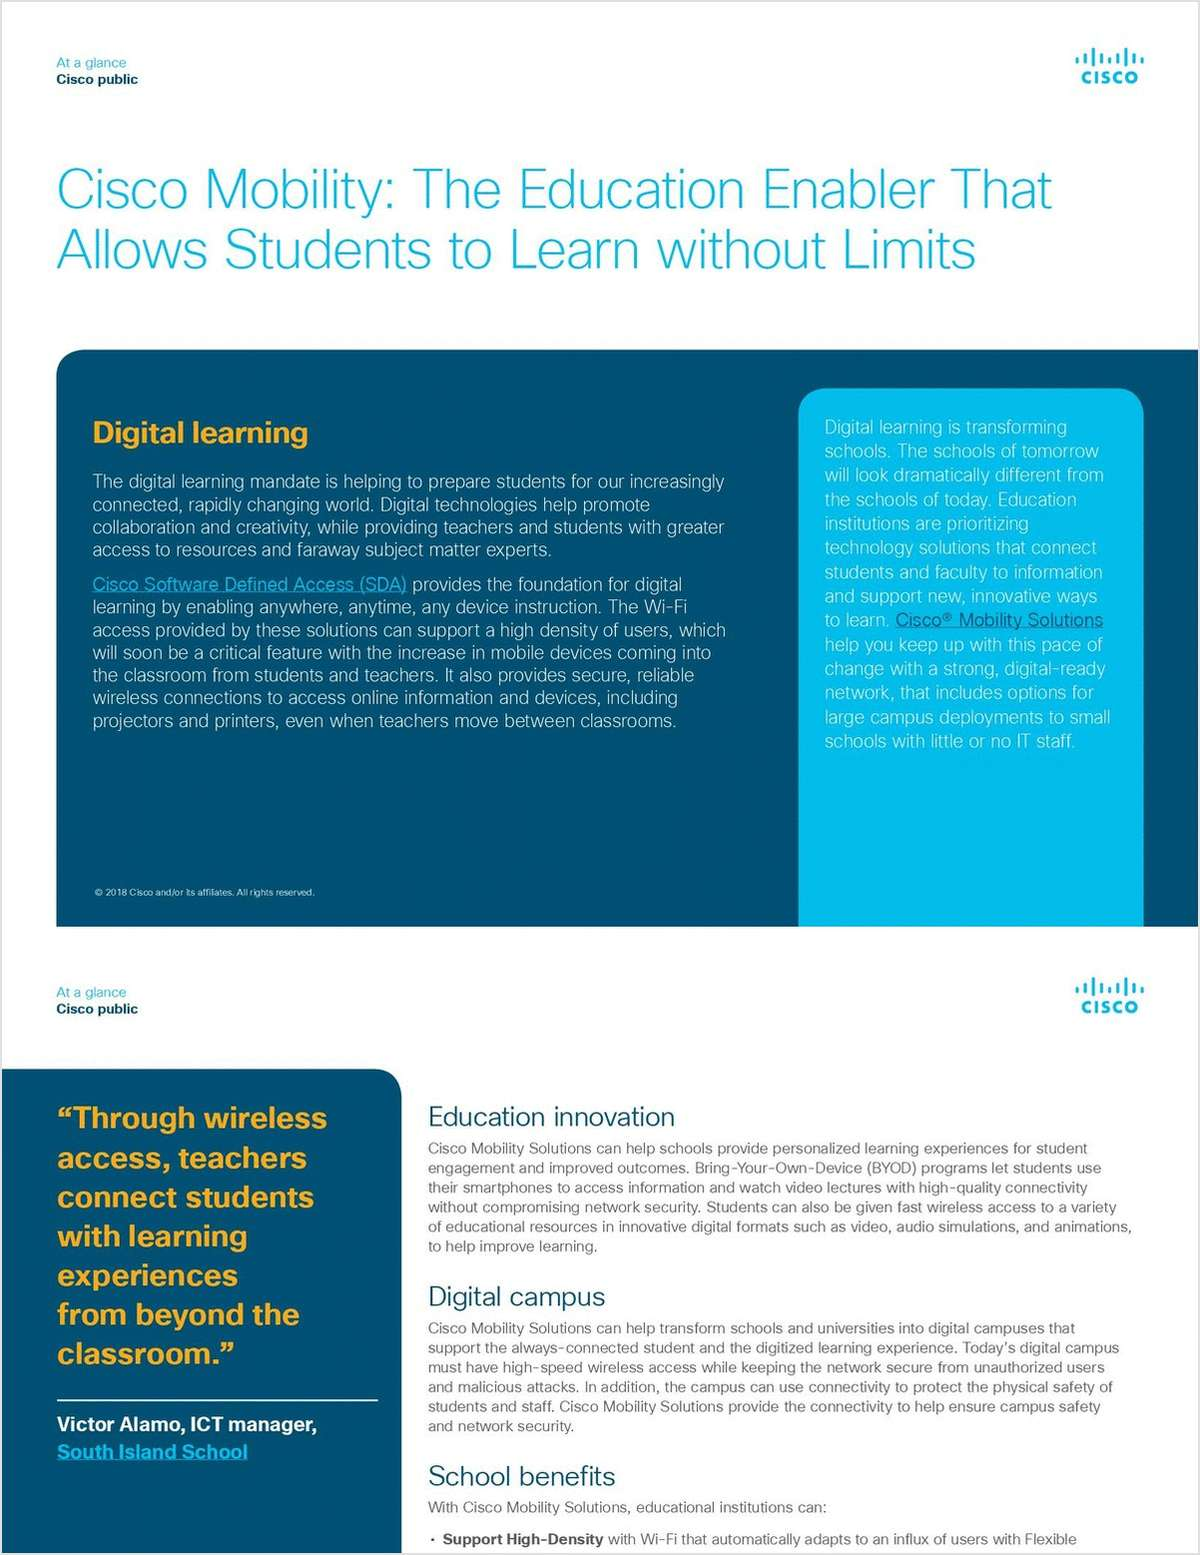 Cisco Mobility: The Education Enabler That Allows Students to Learn without Limits